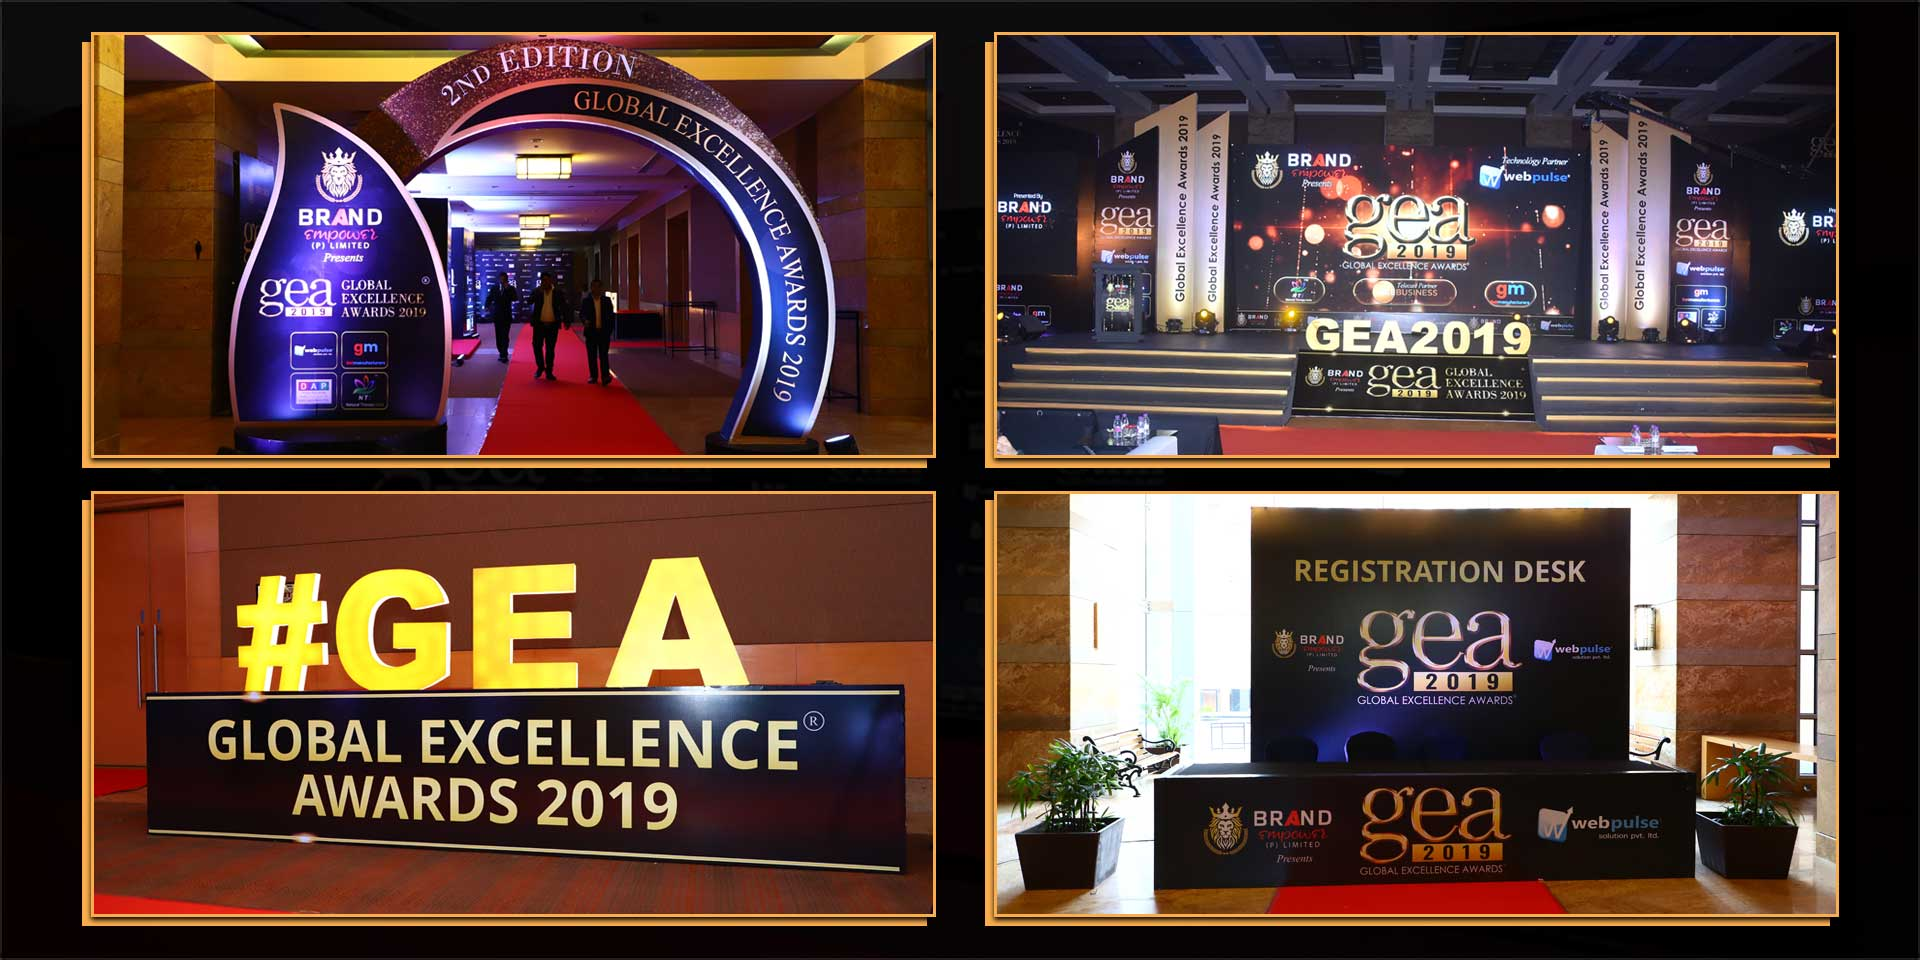 Global Excellence Awards 2019